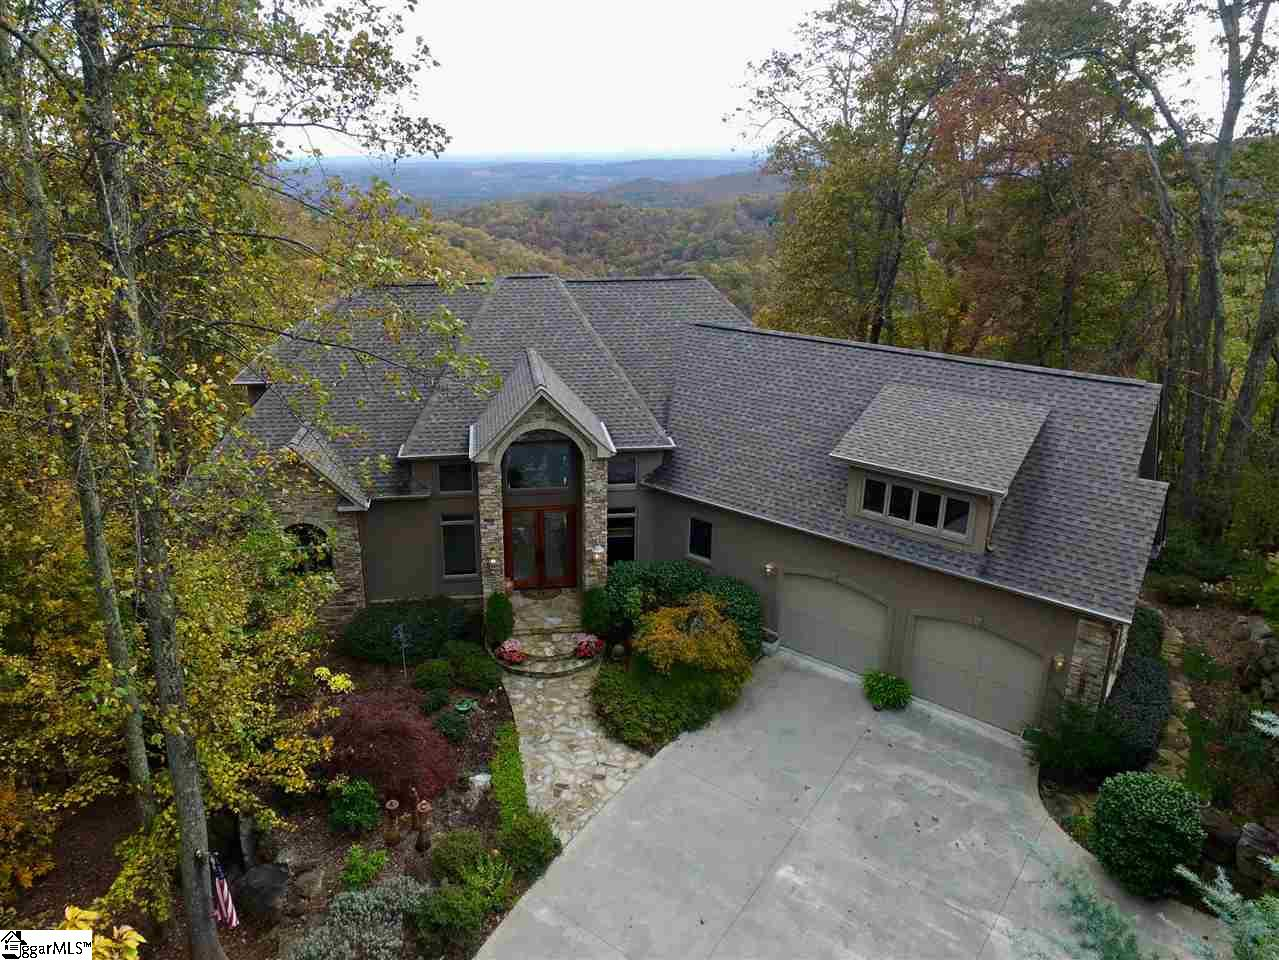 "Come home to The Cliffs at Glassy, The Cliffs' original gated golf and wellness community atop Glassy Mountain in Landrum, SC. Prepare to be amazed by this meticulously maintained contemporary mountain retreat where no detail was spared. Built on 3.55 acres with a magnificent waterfall across the street, producing a running creek behind the property creating the soothing effect of running water. Offering immense privacy, Brazilian cherry wood floors, casement windows, and an open, extremely livable floor plan, 5 bedrooms, 4 full baths, 2 half-baths, a bonus room with 4 built in bunk beds. There are 4 fireplaces and panoramic views of mountains, valleys and city lights at night which can be viewed from nearly every room of this 3 story, 5,700+ sq. ft. home. The main level open floor plan provides more than enough space for entertaining friends and family. A great room with fireplace, large kitchen, dining room, breakfast area, and screened in porch with easily adjustable windows to create a year-round room. The screened in porch has a fireplace and an indoor grill, vented out, to be used even in the coldest of weather. The kitchen is custom cabinetry extending to the top of 10-foot ceilings with custom 12"" dental moldings. The master bedroom suite, also located on the main level, features a nice size sitting area with a lighted tray ceiling, television built-in closed cabinetry and a fireplace. Access the main level 22' x12' outdoor covered deck from the master suite, or the kitchen/dining area. The upper level has a landing that expands from one side of the house to the other, looking down into the main floor family room with magnificent views of the outdoors. There are 2 bedrooms suites with their own full bathrooms. Every bathroom in the home has custom tile and granite or marble with glass shower doors. In addition, there is a bunk room on the upper level, with 4 built-in bunk beds and a large living area for TV and games. The lower level of the home includes an additional recreation room with fireplace, built-in wet bar and wine. There are 2 additional bedrooms, one full bath, and one ½ bath. The two bedrooms are currently used as an office, and the other is currently a fully equipped gym. Exit the glass doors to a 65' long deck with additional views and plenty of space for entertaining large parties. Off the lower level deck, there is a large storage/potting room.  A sink is included for an ideal place to pot plants. This extraordinary mountain home has had one owner who designed the home with a unique touch to detail in every room. Landscaping is lush, with different plants that bloom year-round. A Cliffs Club membership is available to purchase with the real estate."